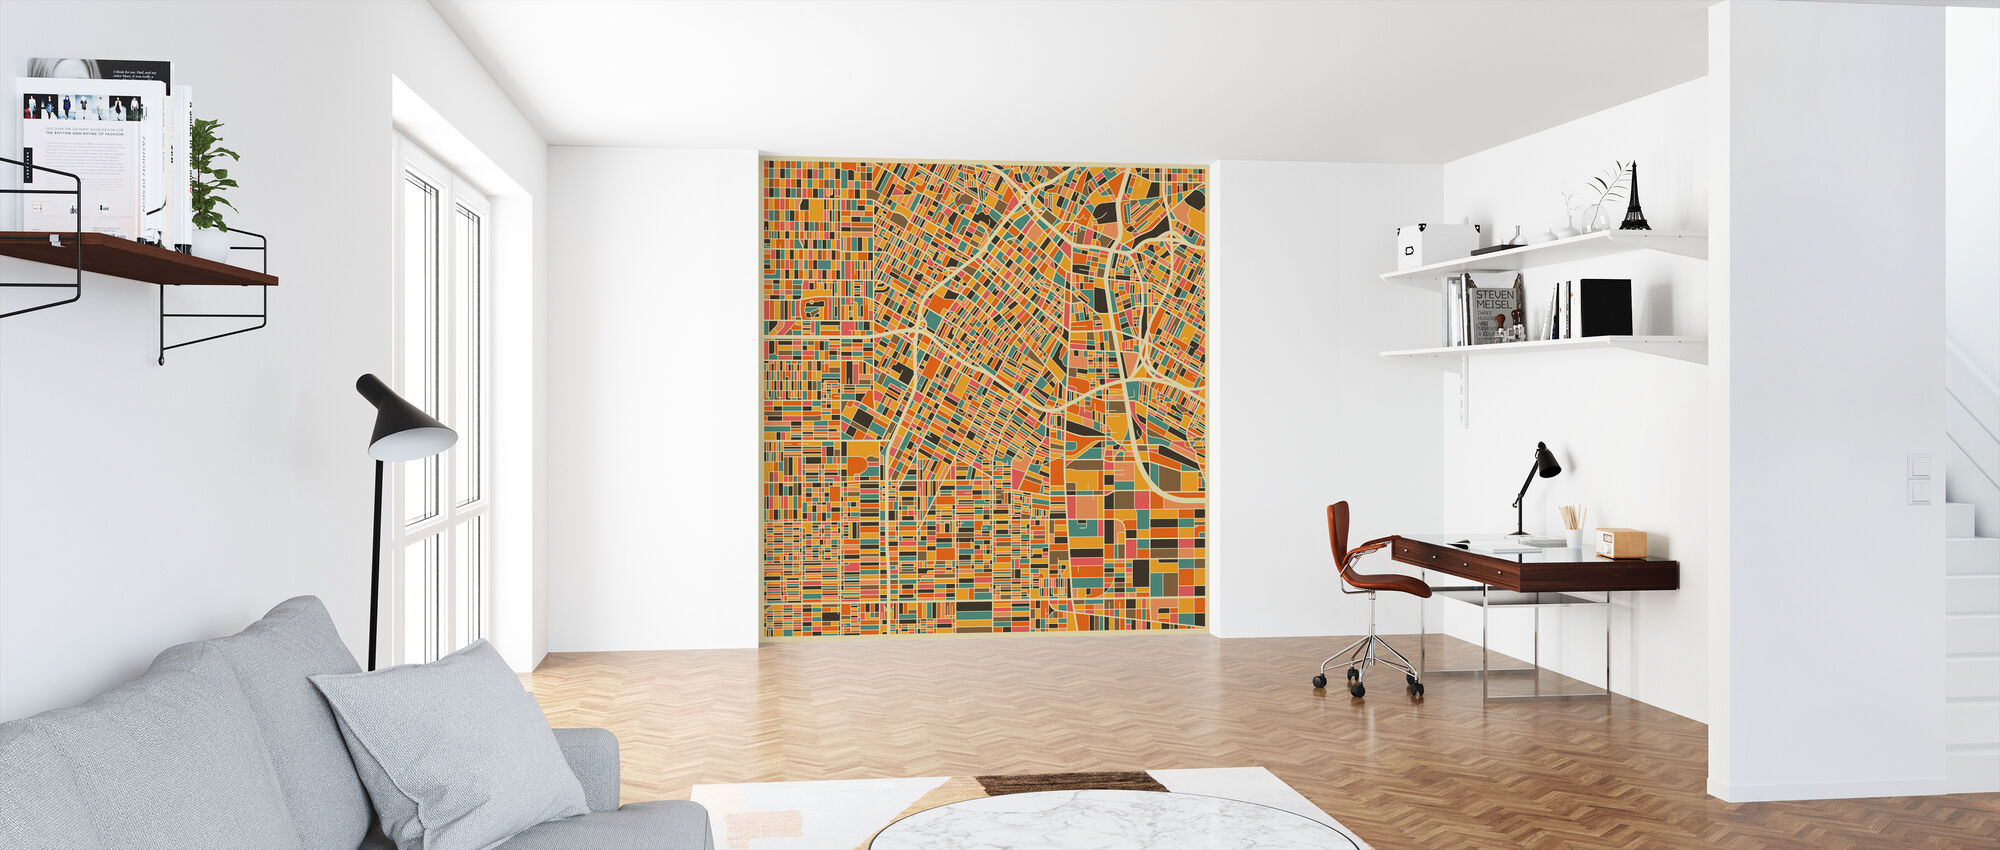 Multicolor Map - Los Angeles - Wallpaper - Office